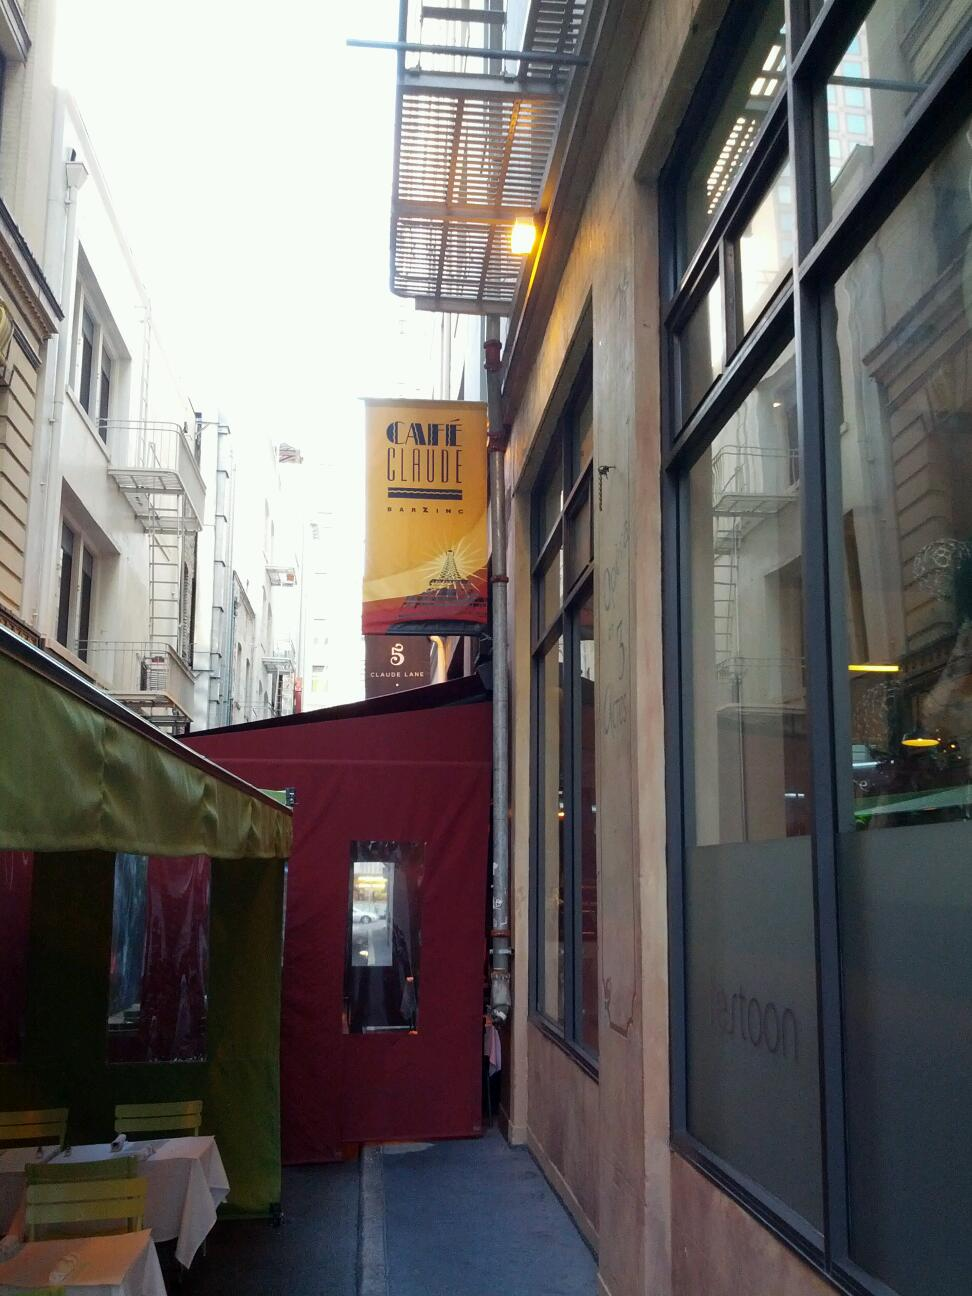 Reasons to eat out in San Francisco - Cafe Claude